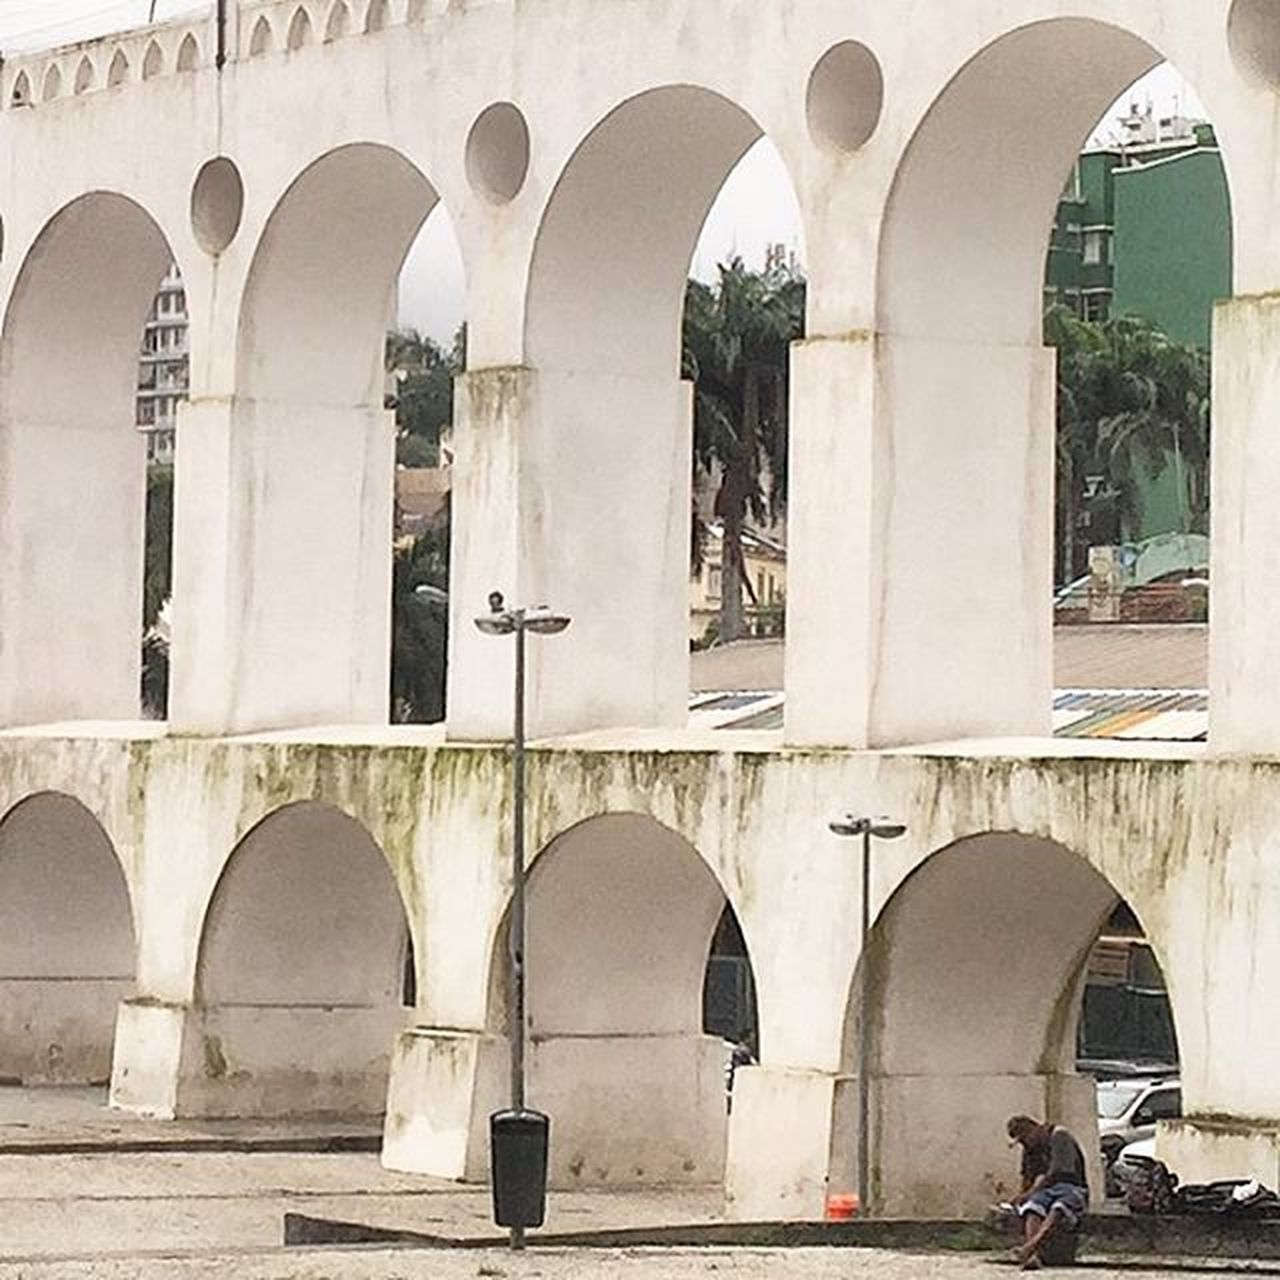 arch, architecture, built structure, architectural column, day, building exterior, outdoors, window, bridge - man made structure, real people, city